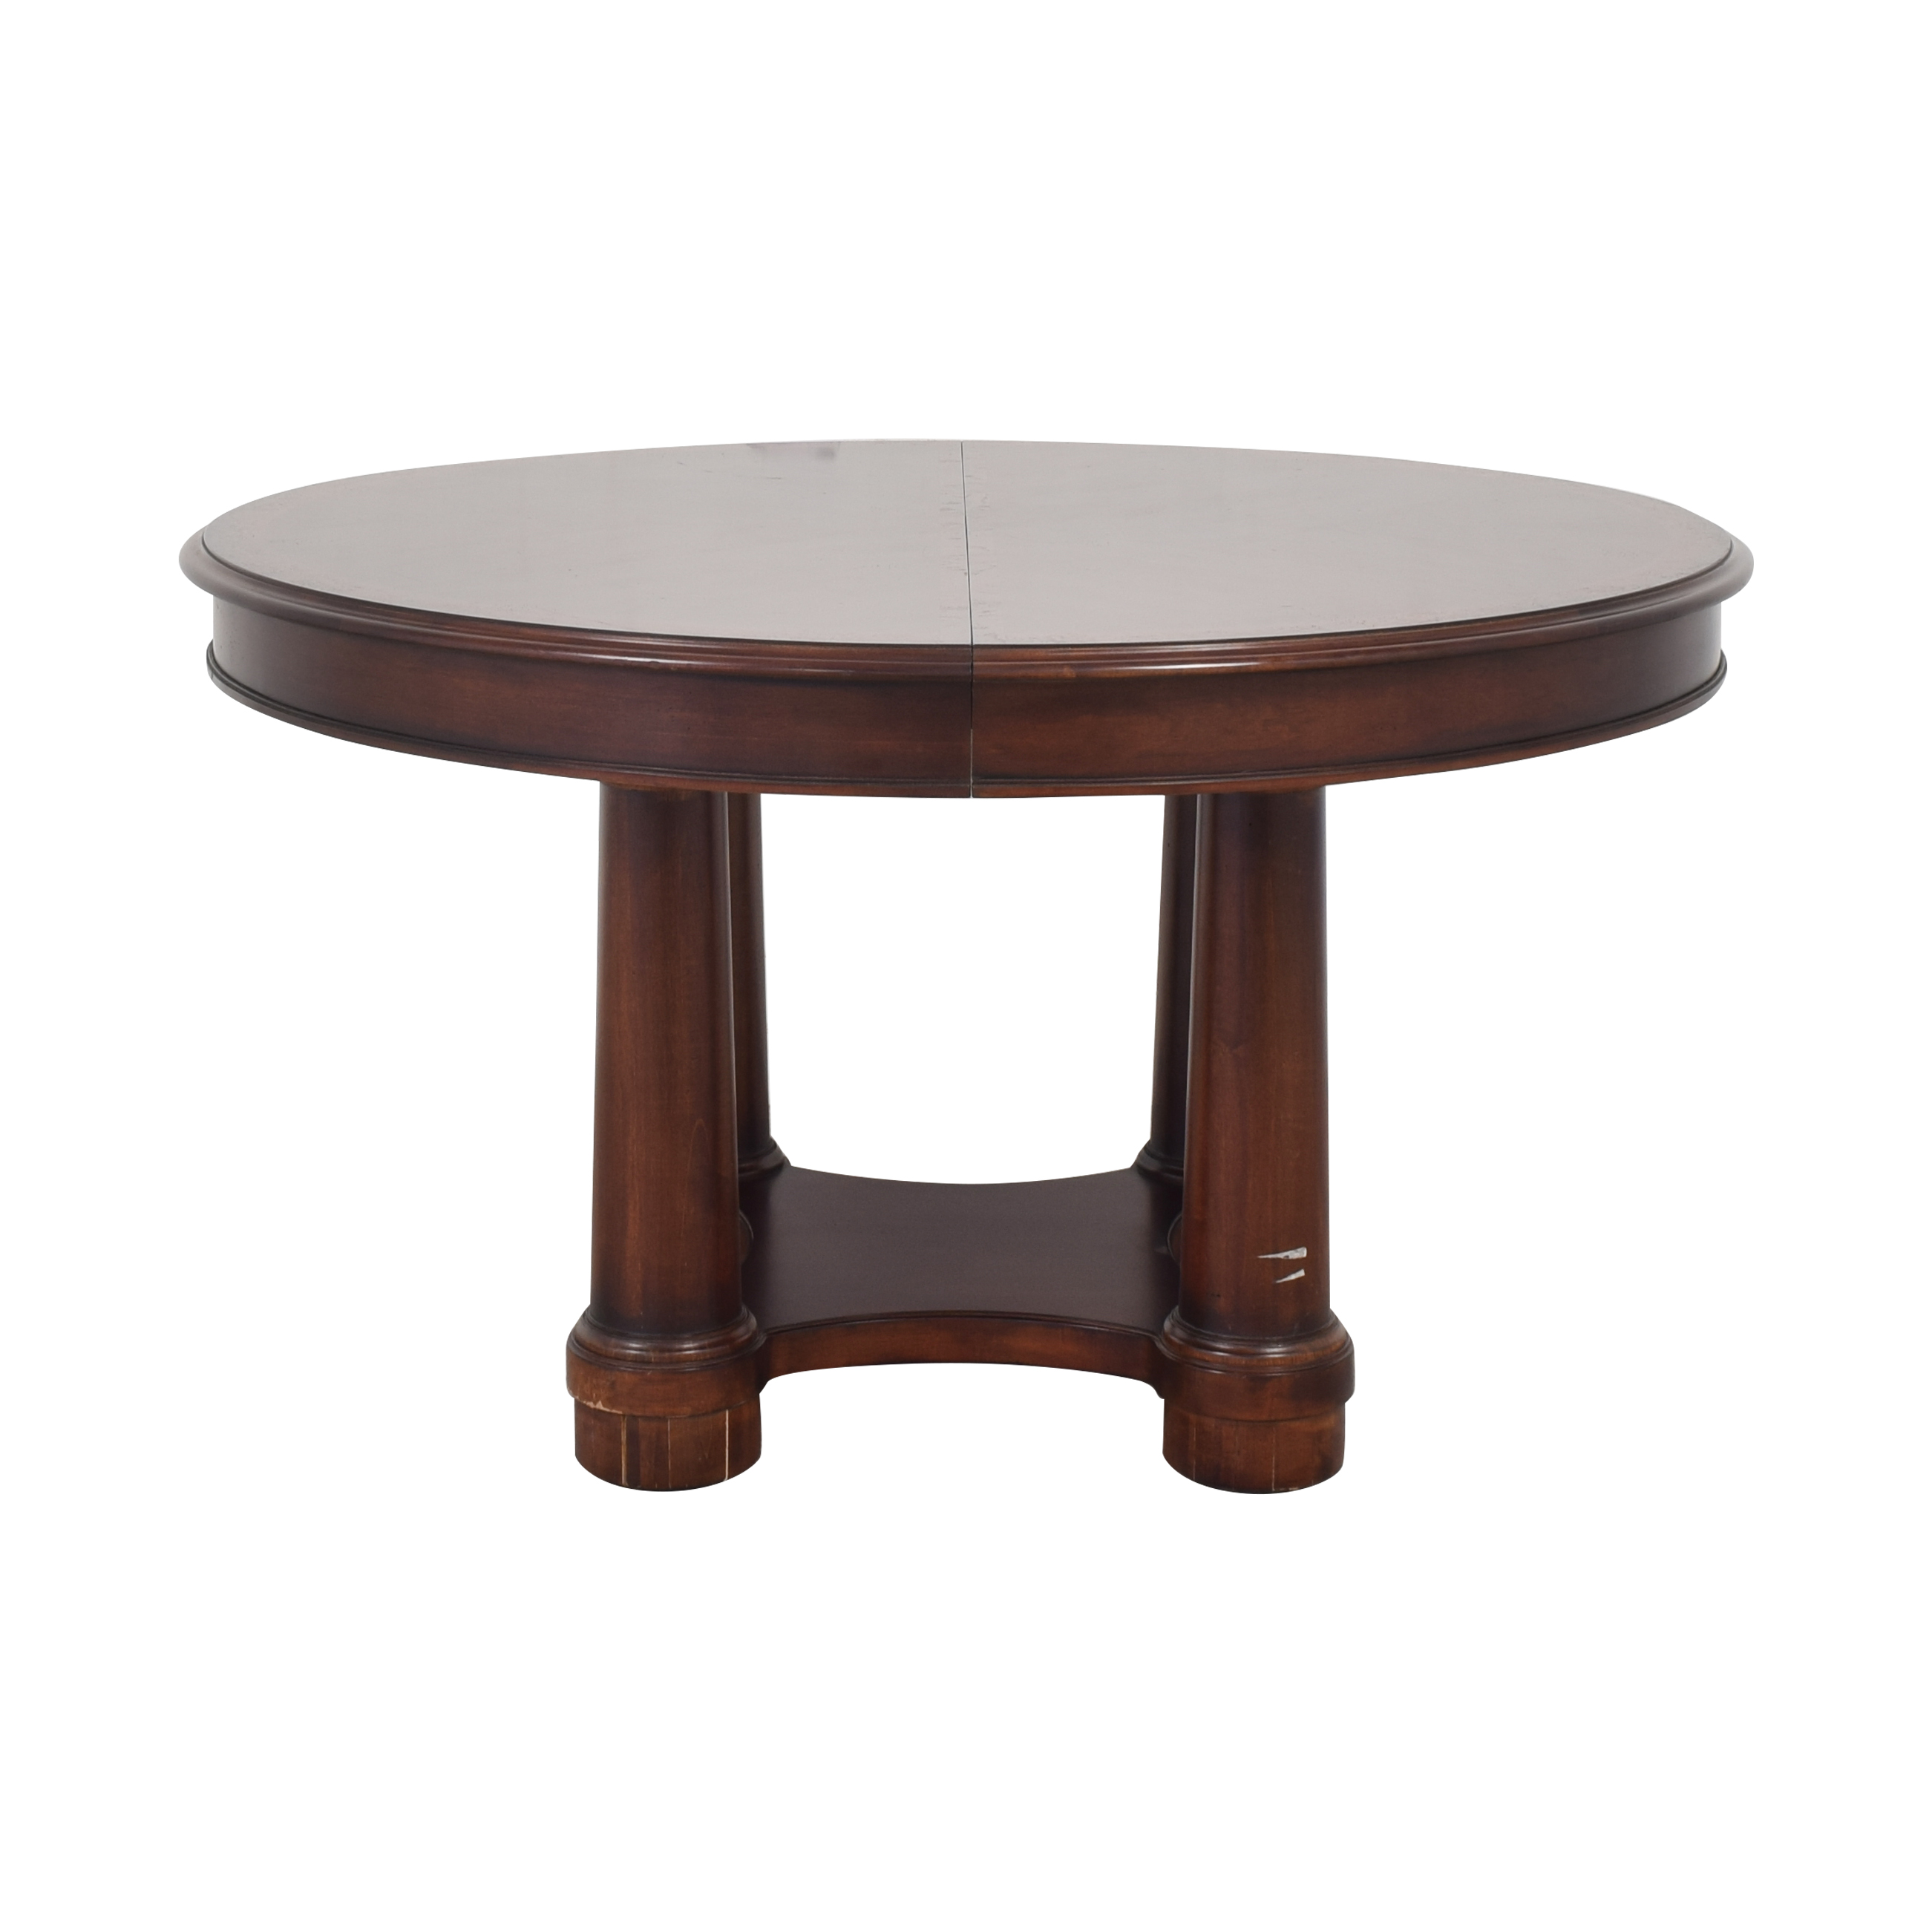 Hickory White Hickory White Dining Table brown